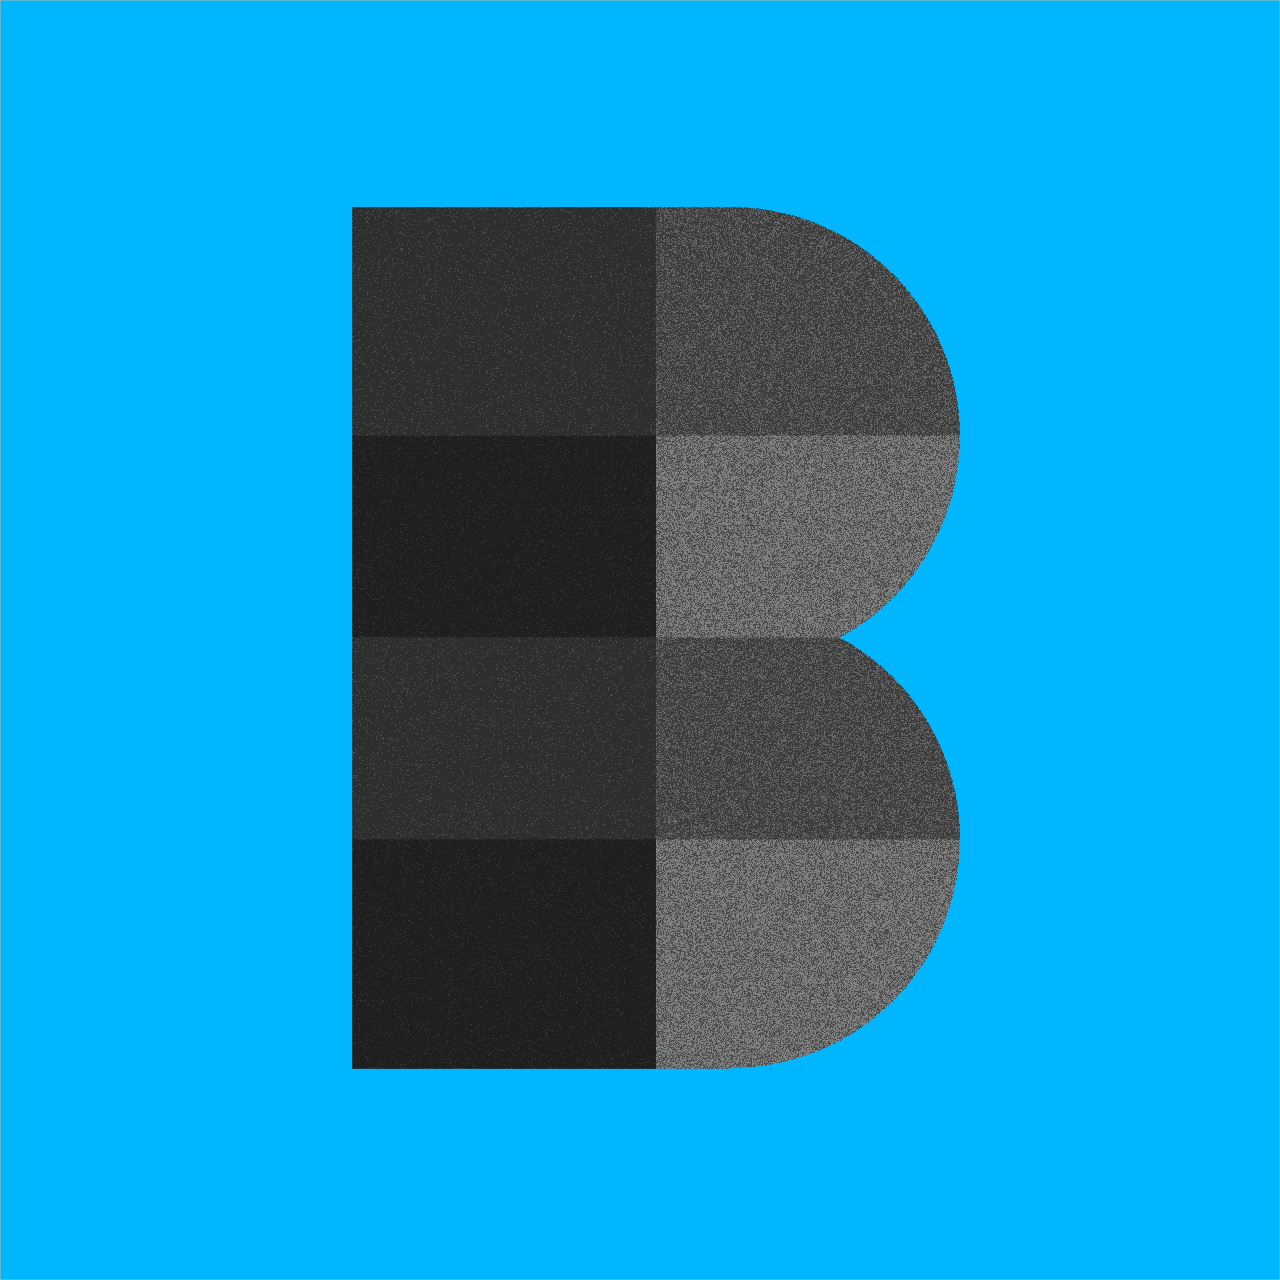 My B submission for 36 Days of Type